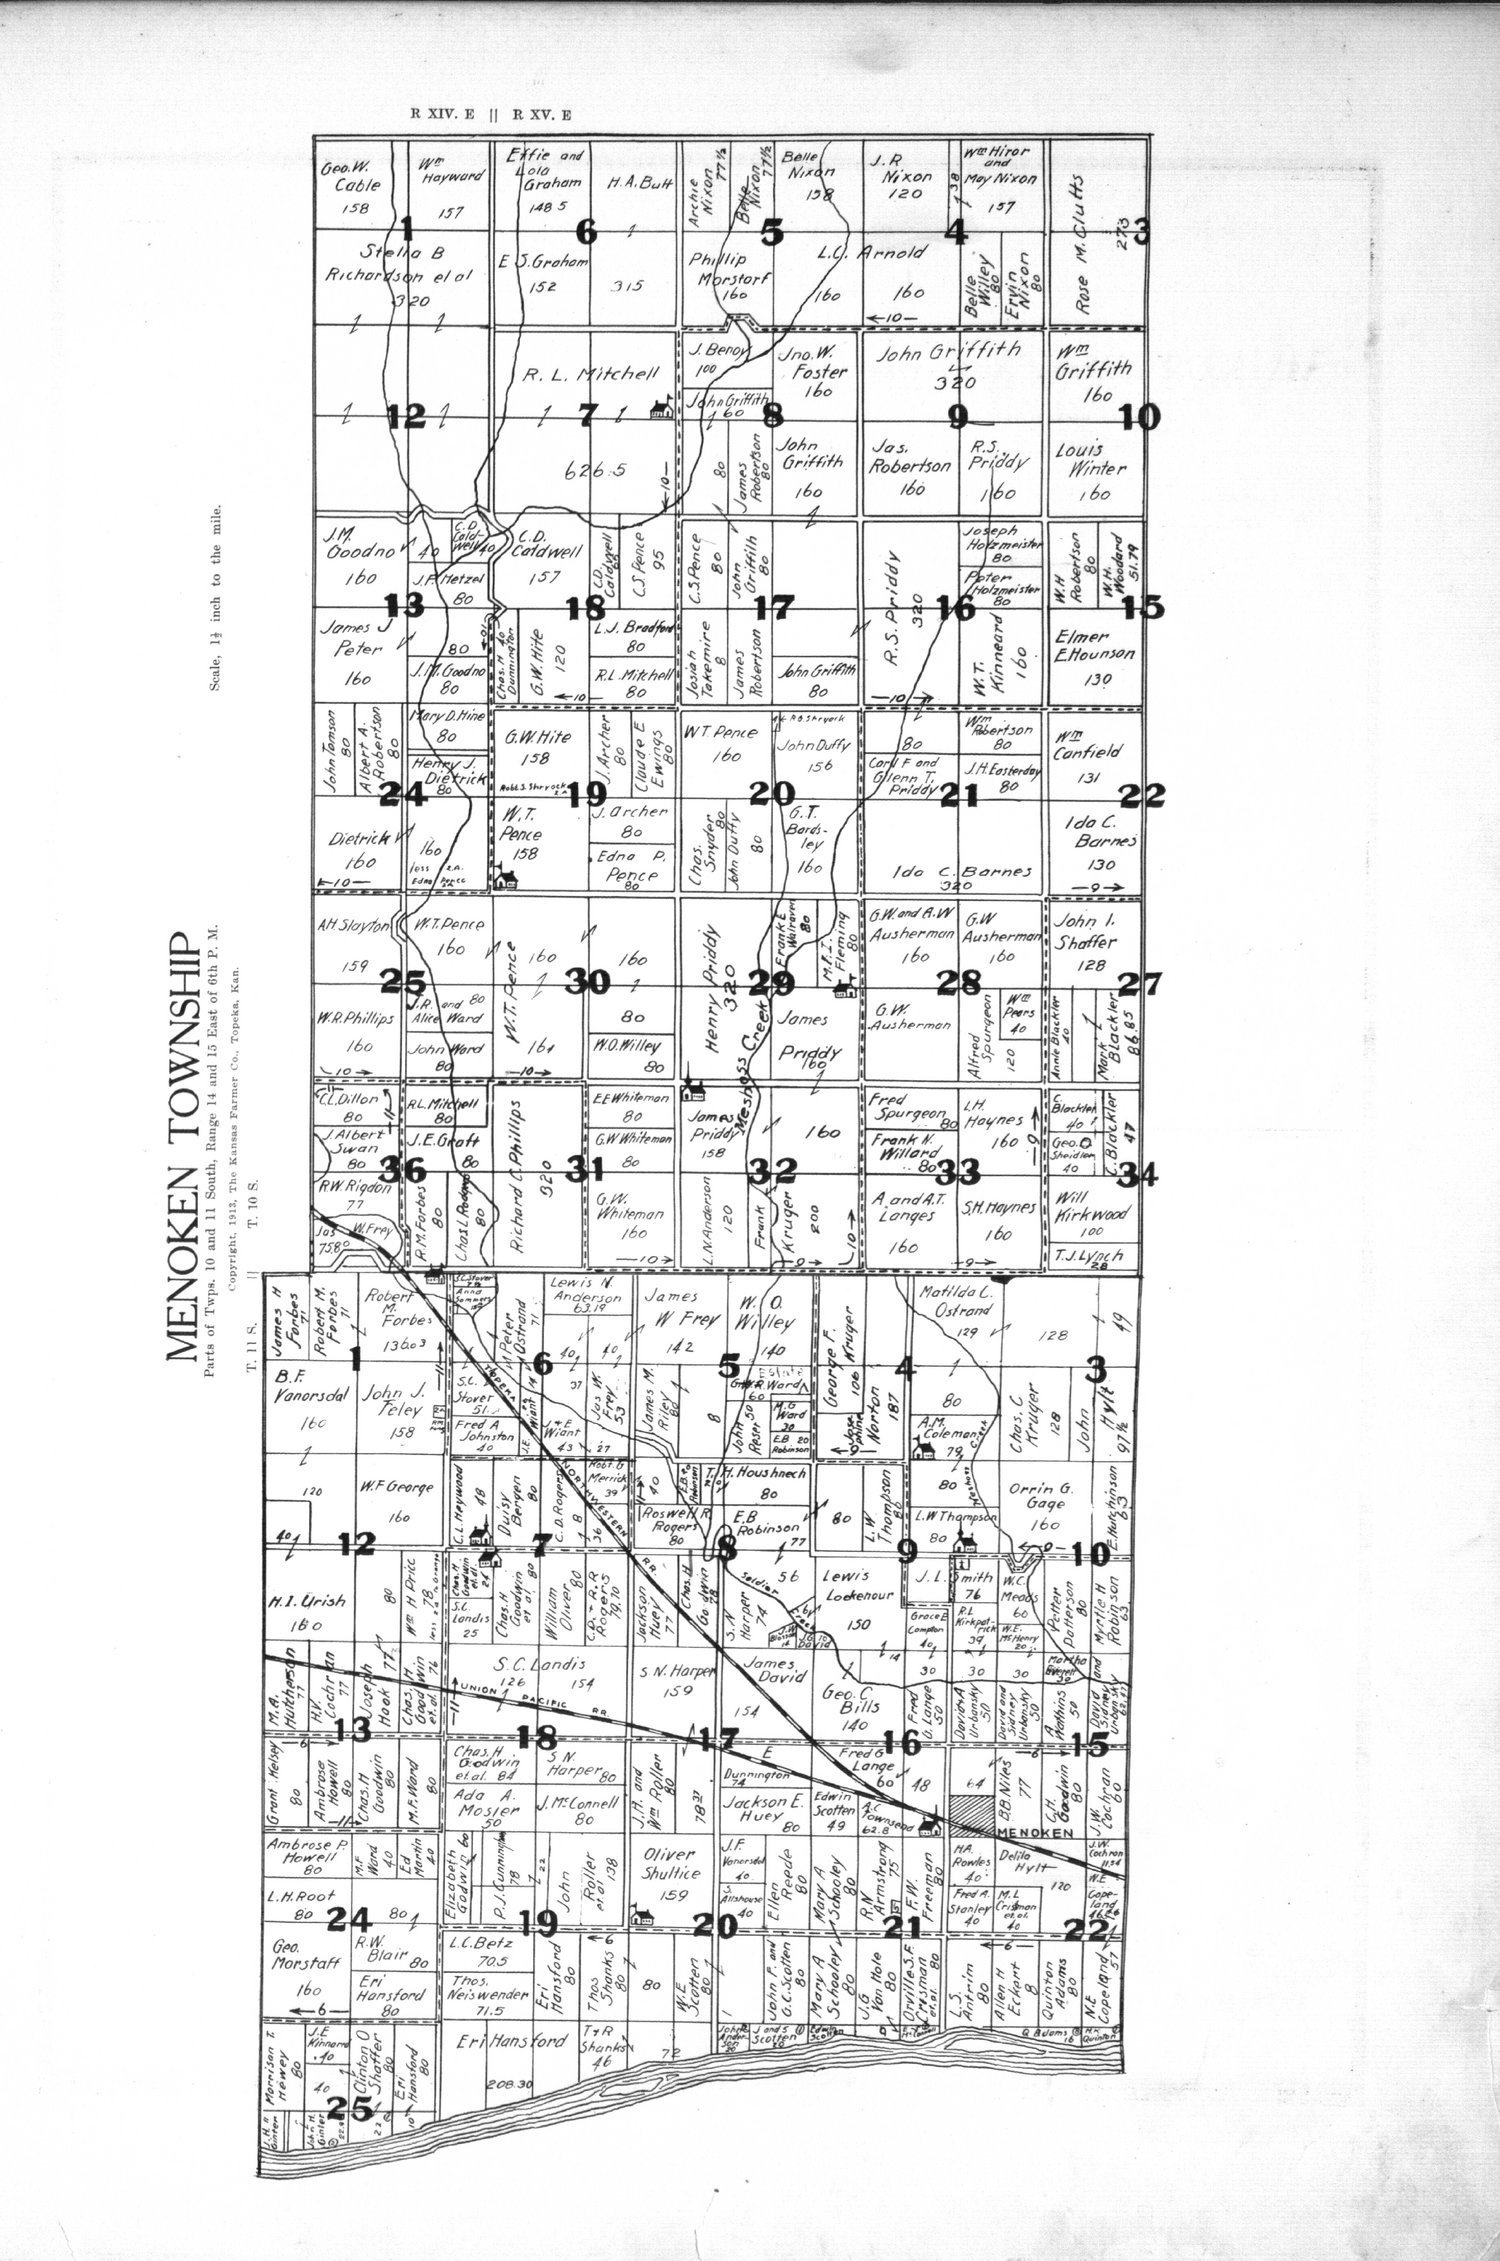 Plat book, directory and survey of Shawnee County, Kansas - 7